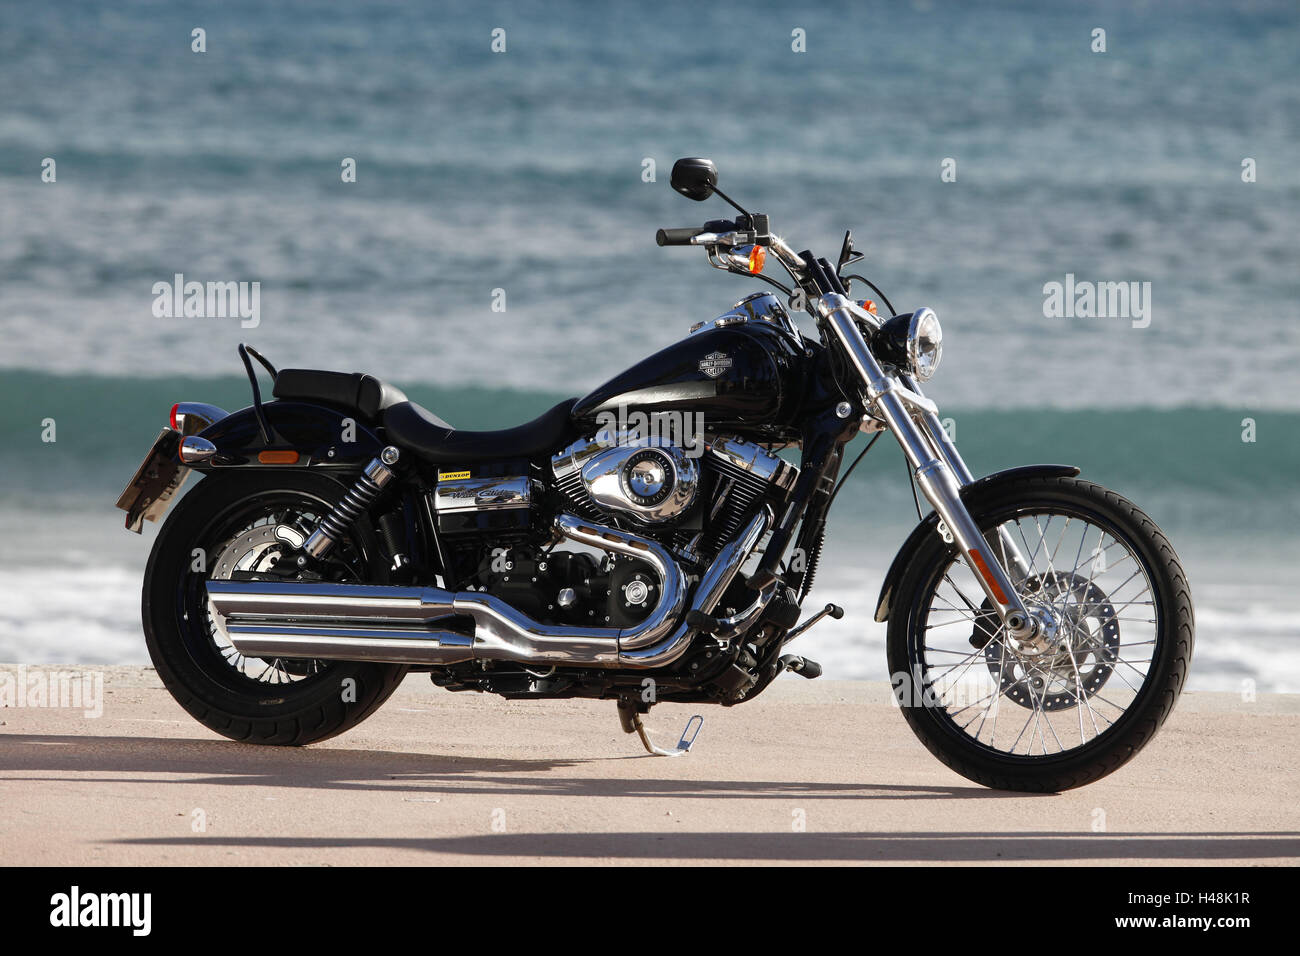 Motorcycle, Cruiser, Harley Davidson Wide Glide, black, sea in the background, side standard right, - Stock Image